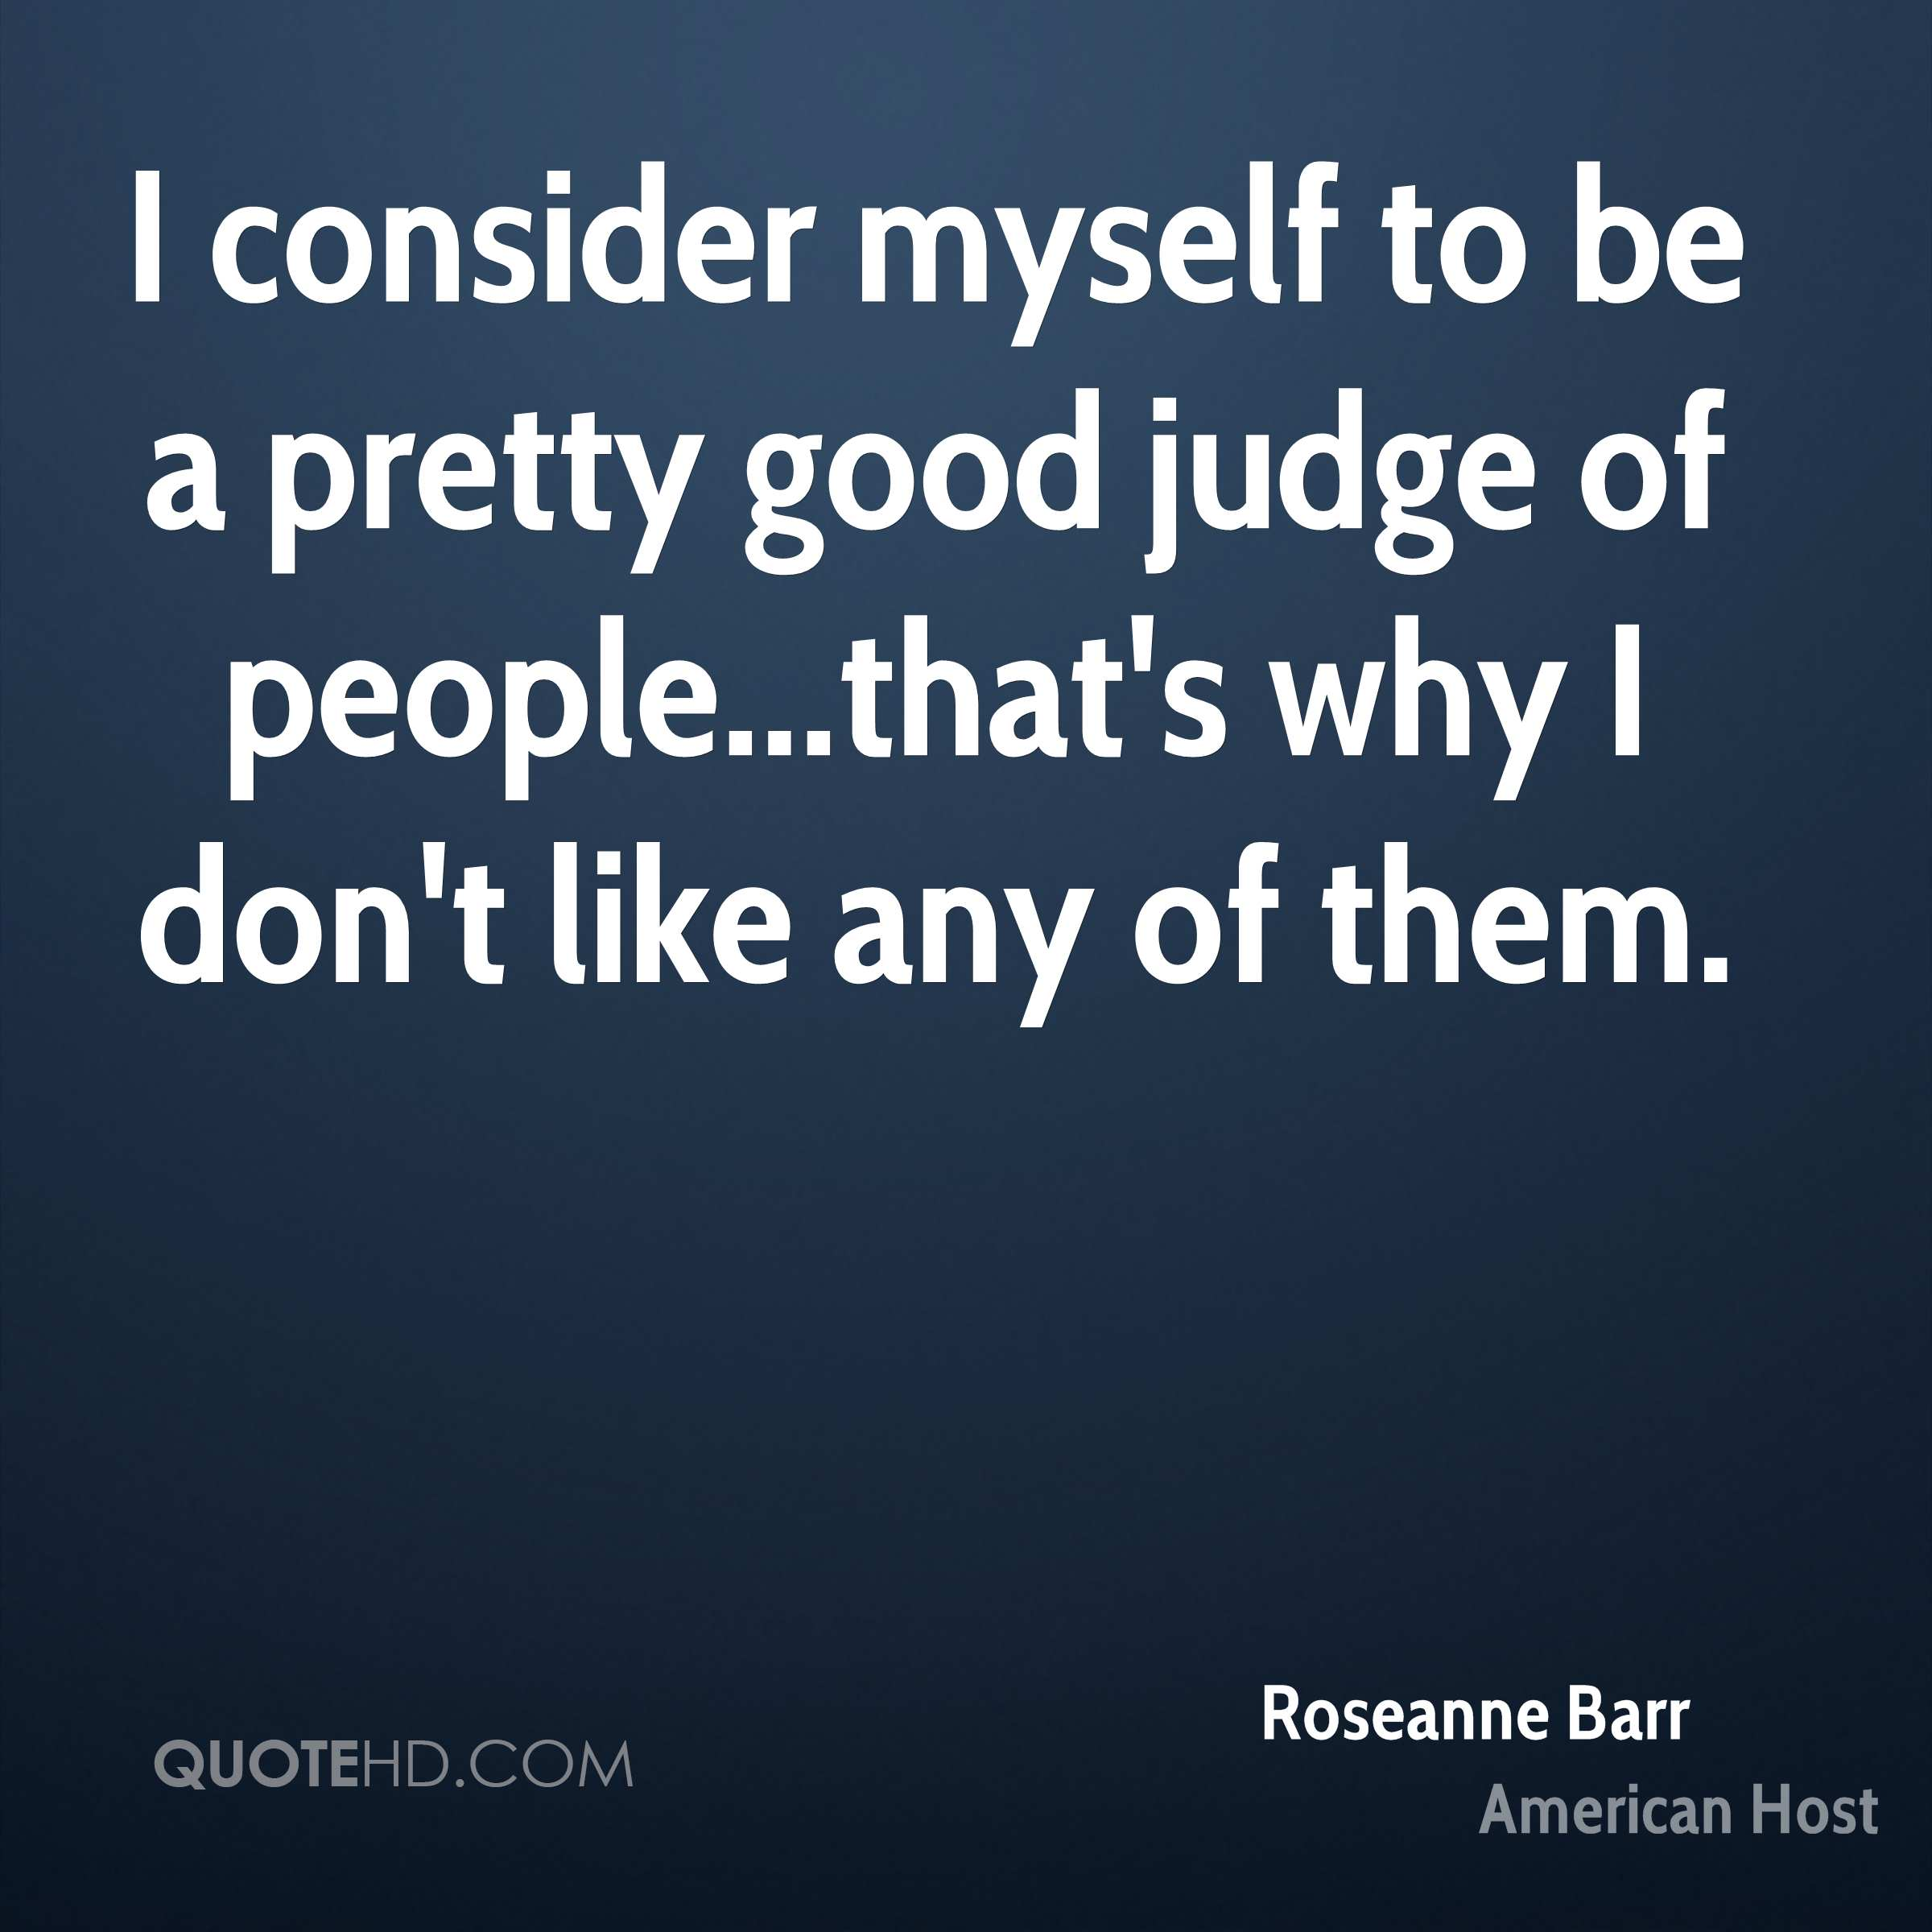 I consider myself to be a pretty good judge of people...that's why I don't like any of them.